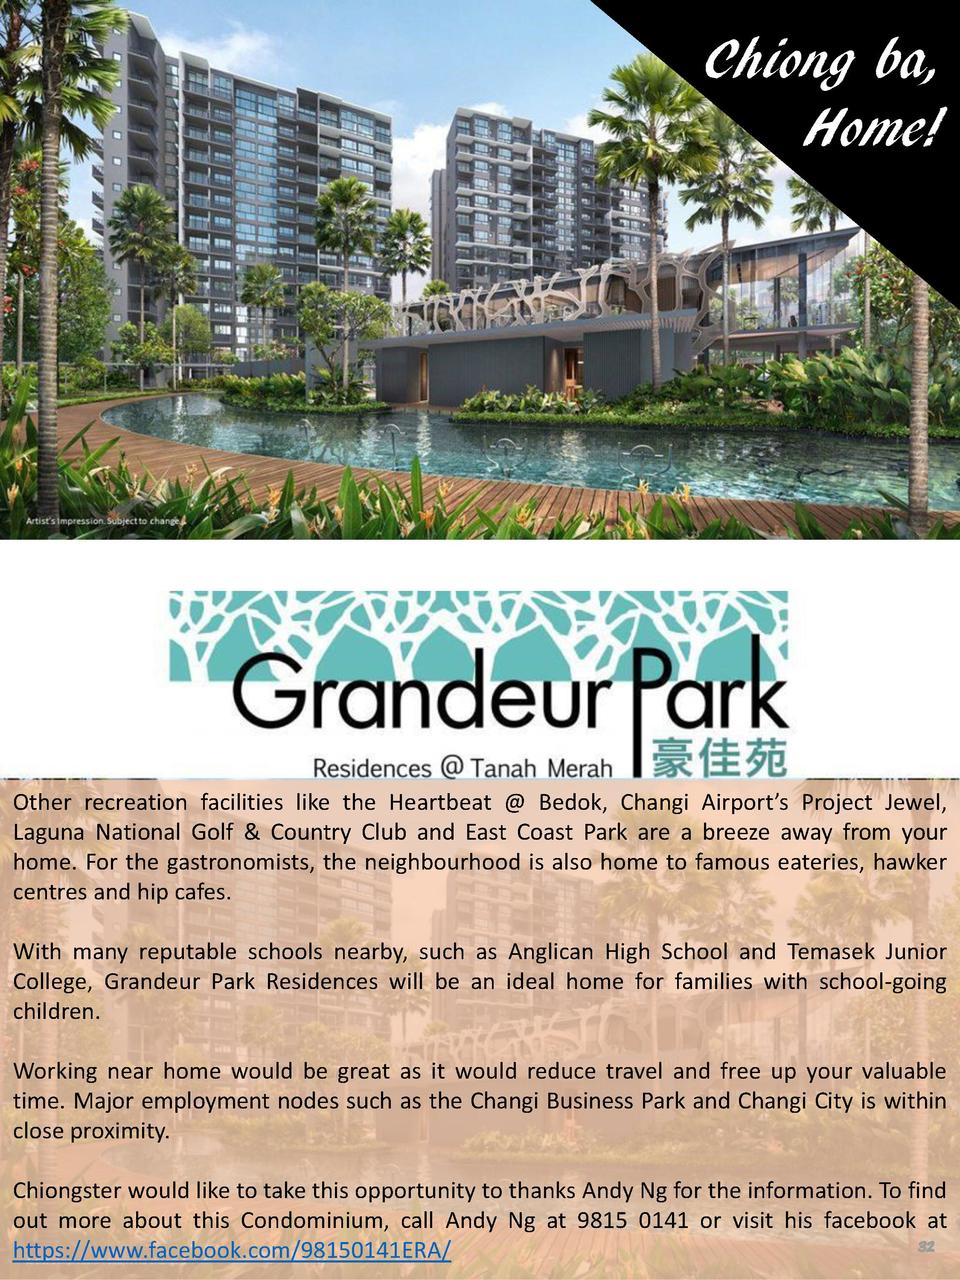 Chiong ba, Home   Other recreation facilities like the Heartbeat   Bedok, Changi Airport   s Project Jewel, Laguna Nationa...